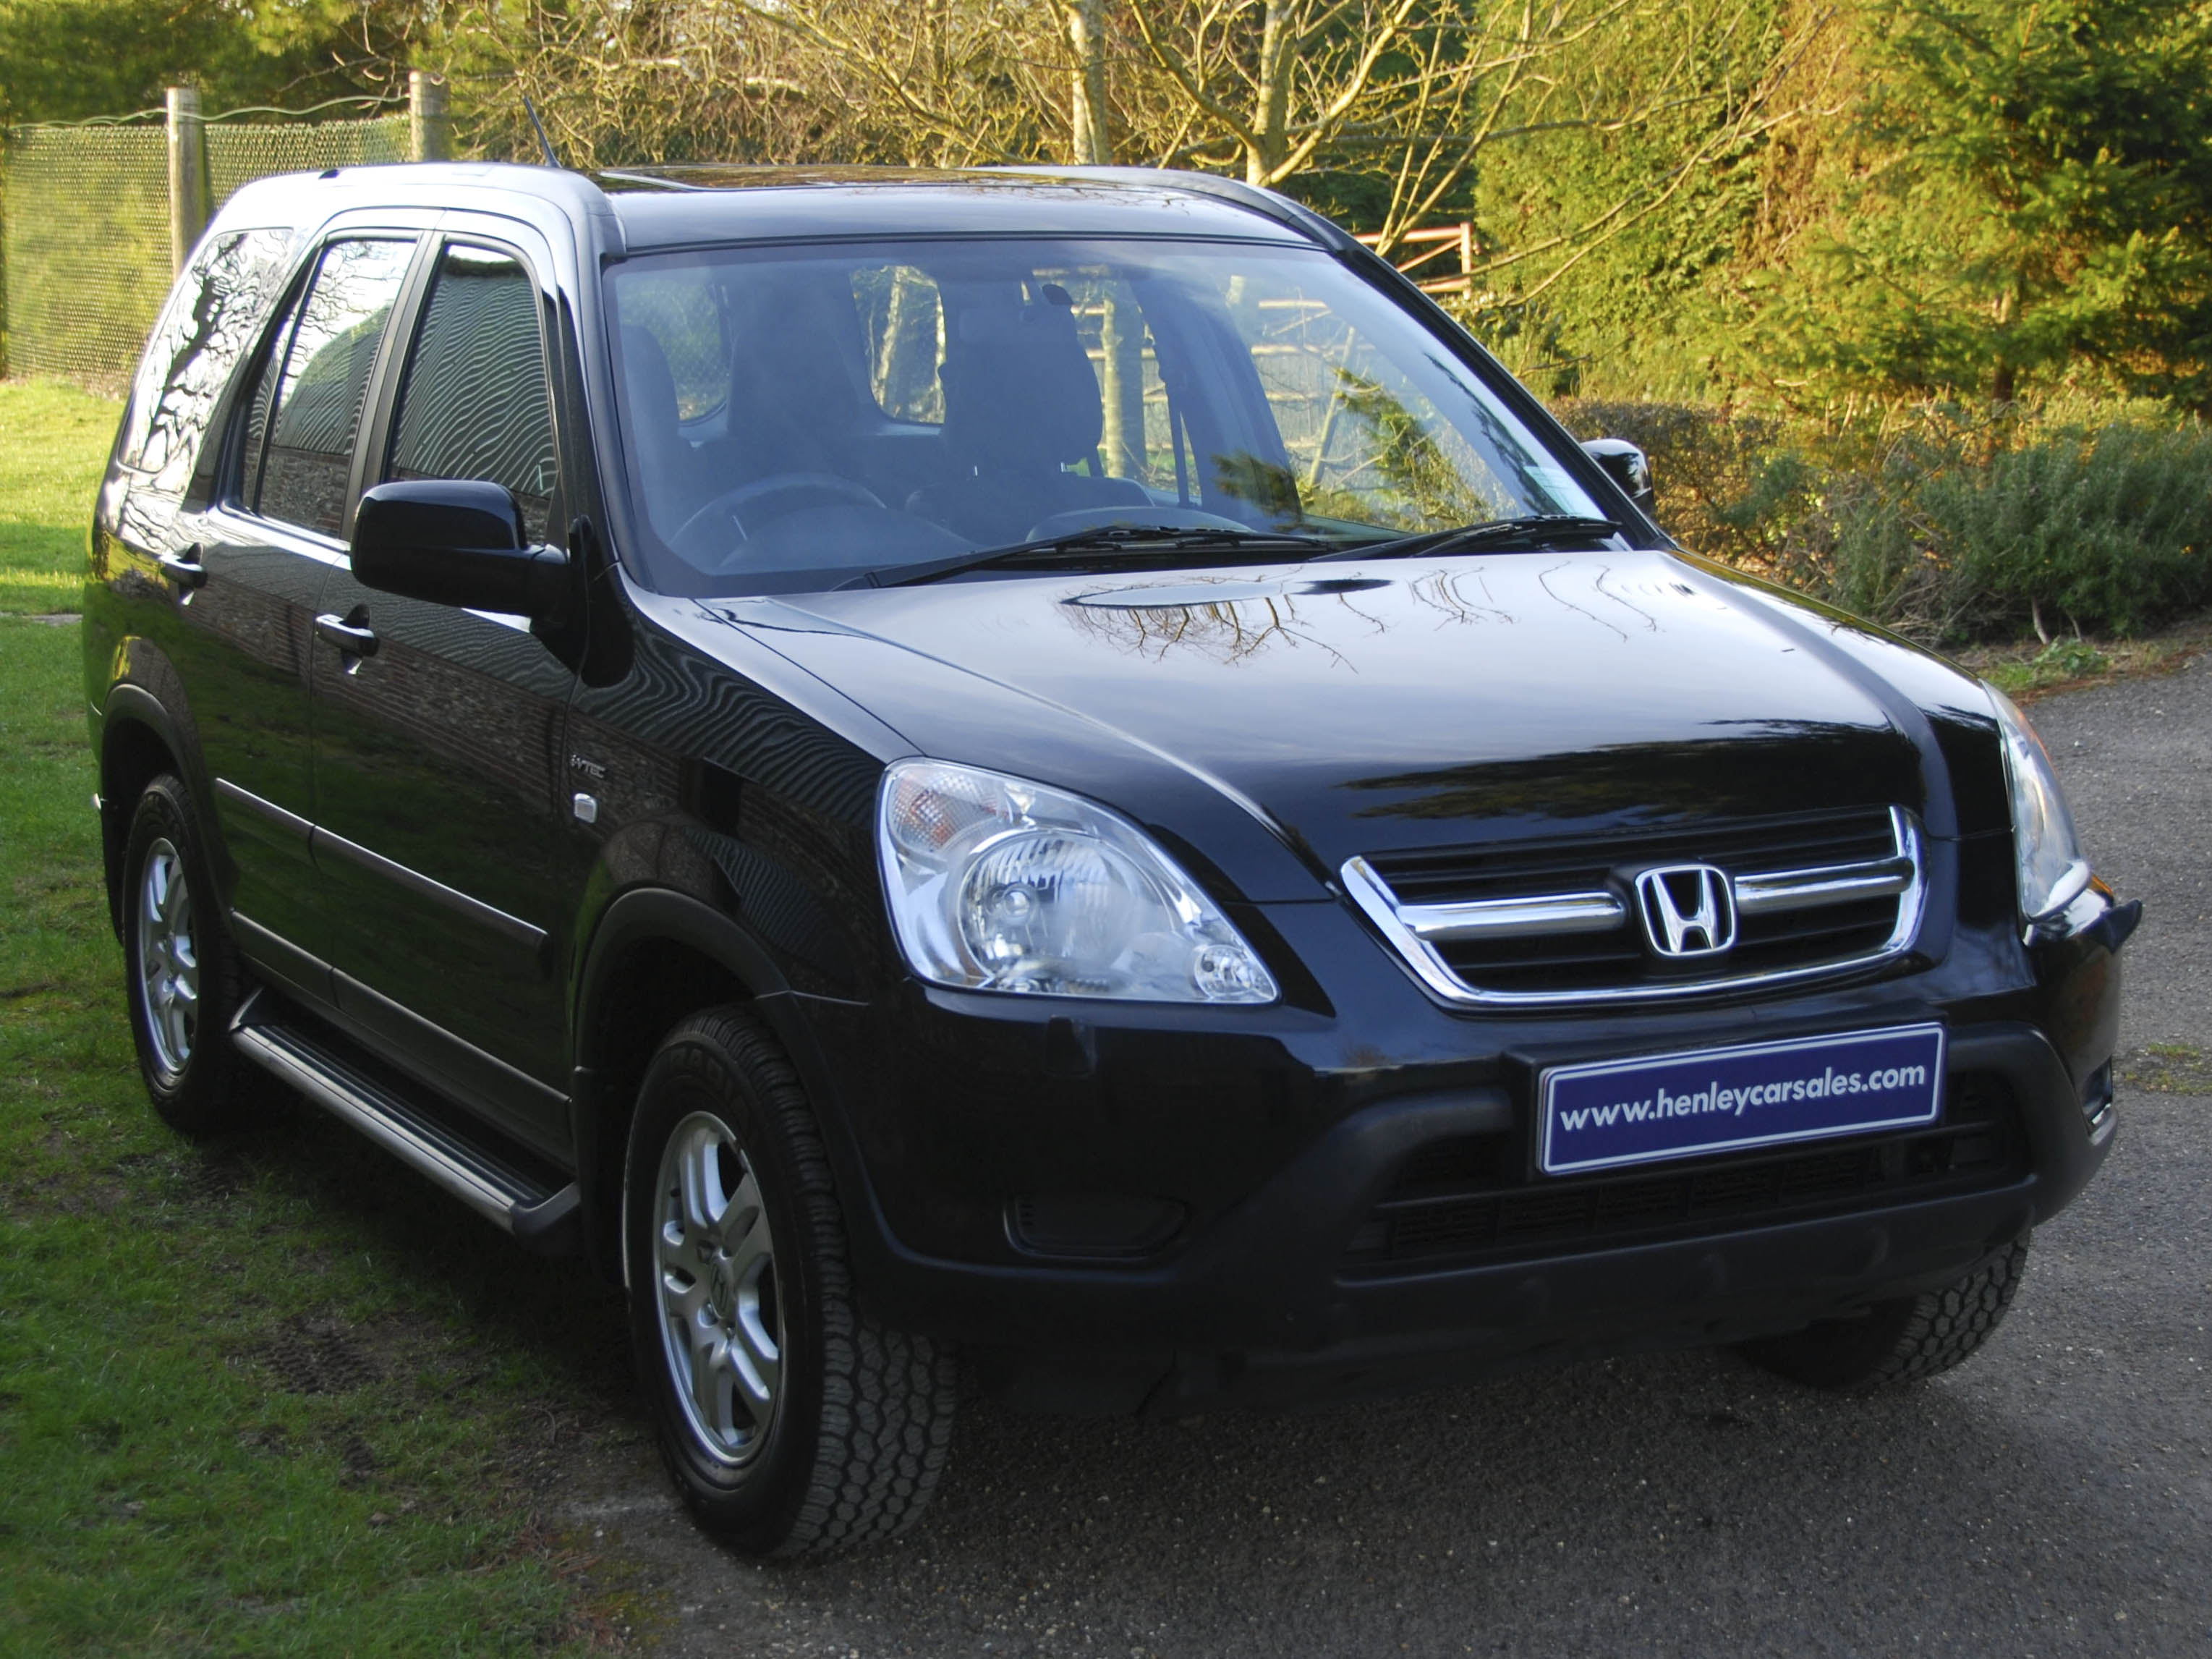 Honda Honda CR-V 2.0 VTEC photo 08